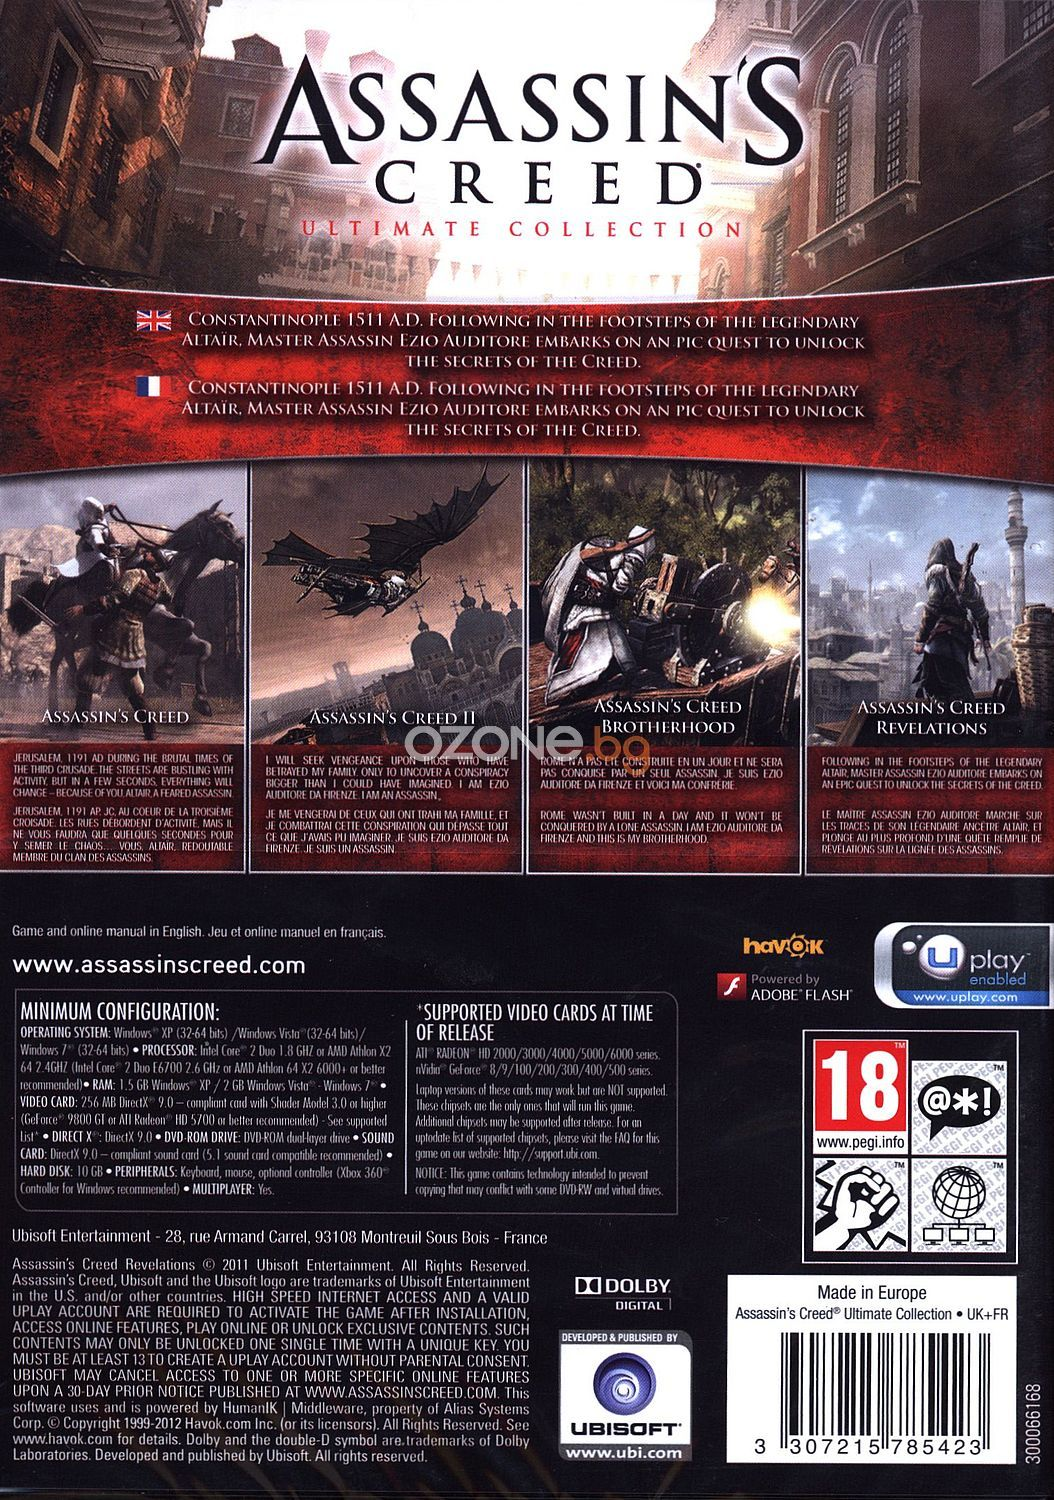 Assassin's Creed Ultimate Collection (PC) - 6